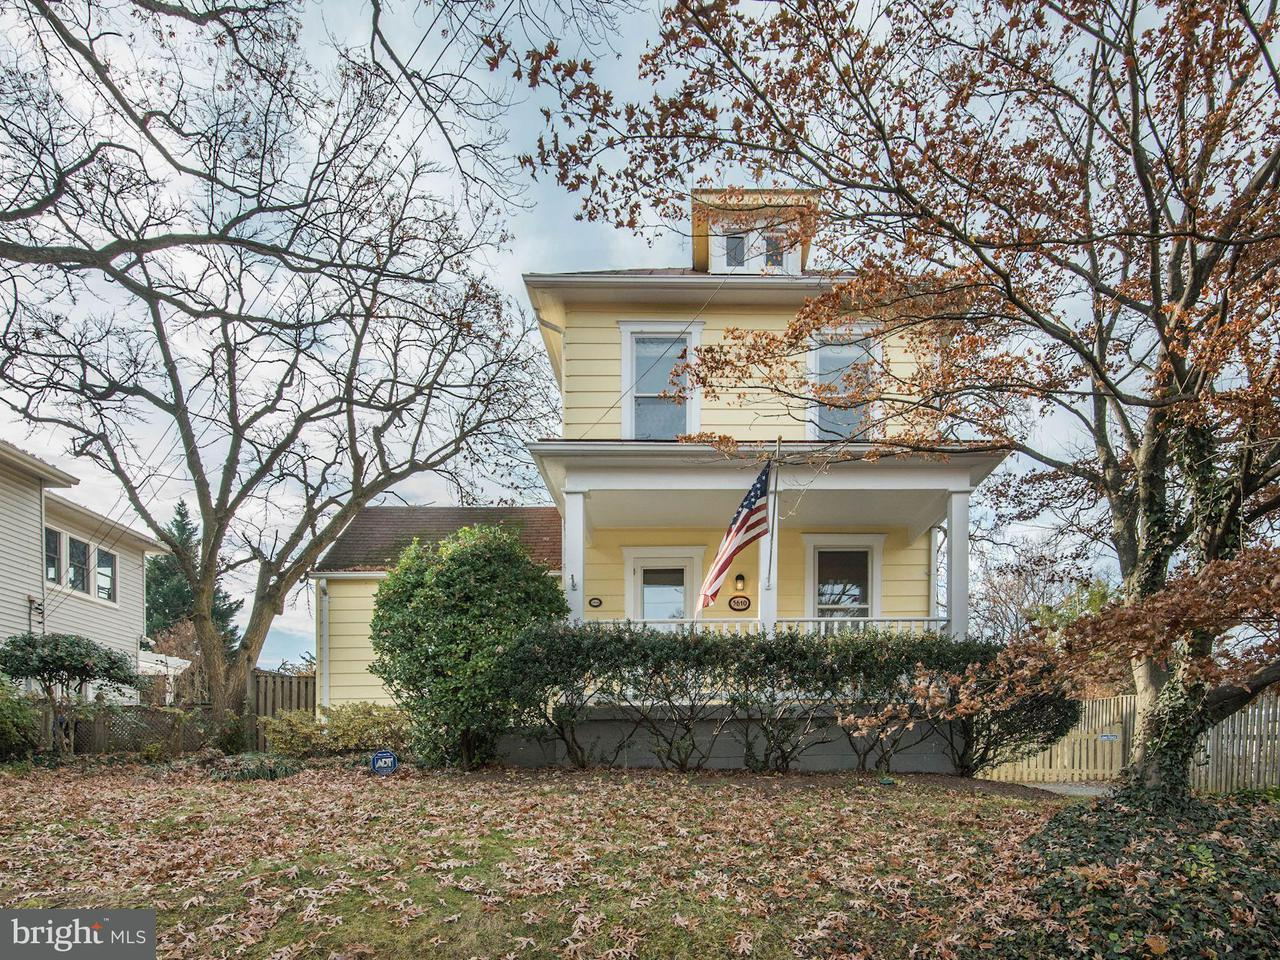 Single Family Home for Sale at 3610 22nd St N 3610 22nd St N Arlington, Virginia 22207 United States